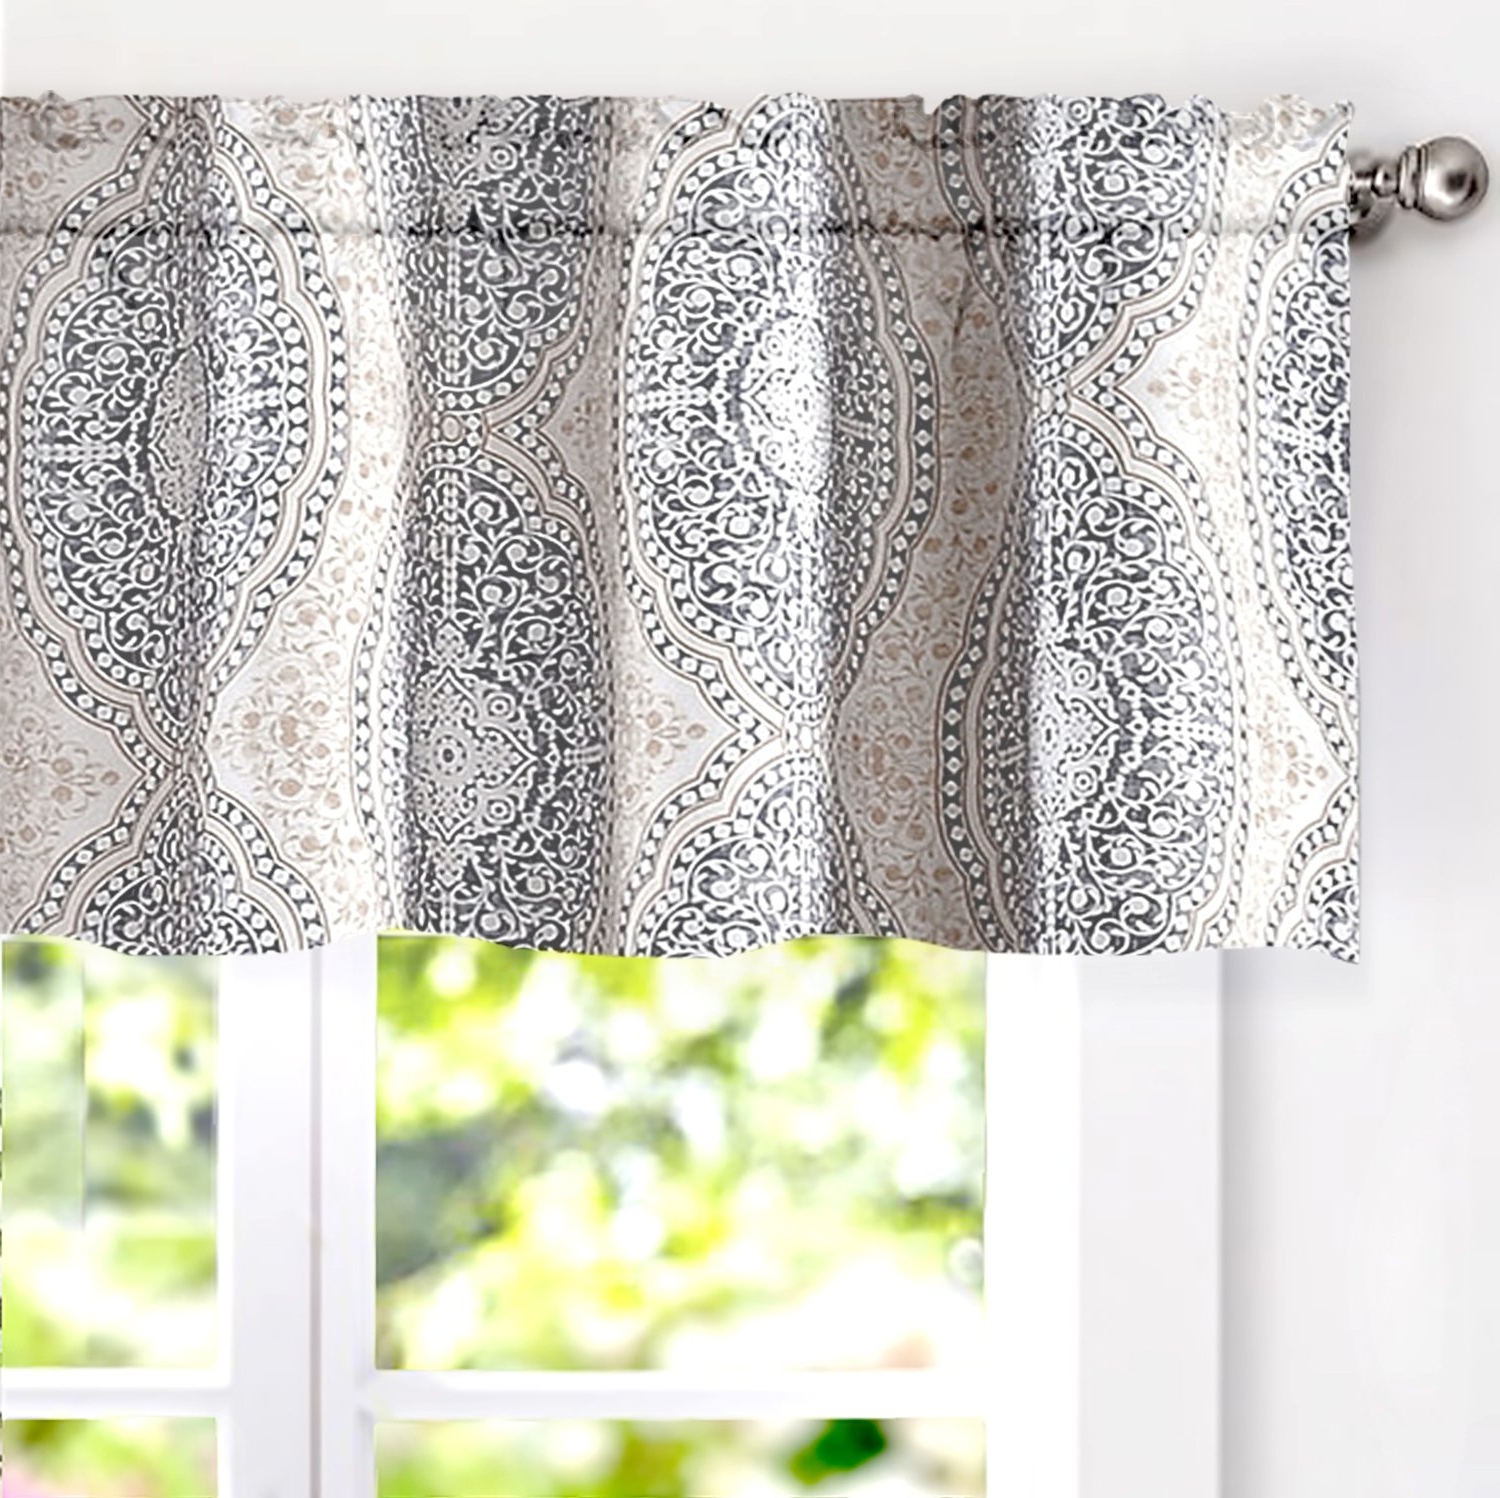 Floral Pattern Window Valances Inside Current Driftaway Adrianne Damask And Floral Pattern Window Curtain Valance 52 Inch 18 Inch Beige And Gray (View 10 of 20)